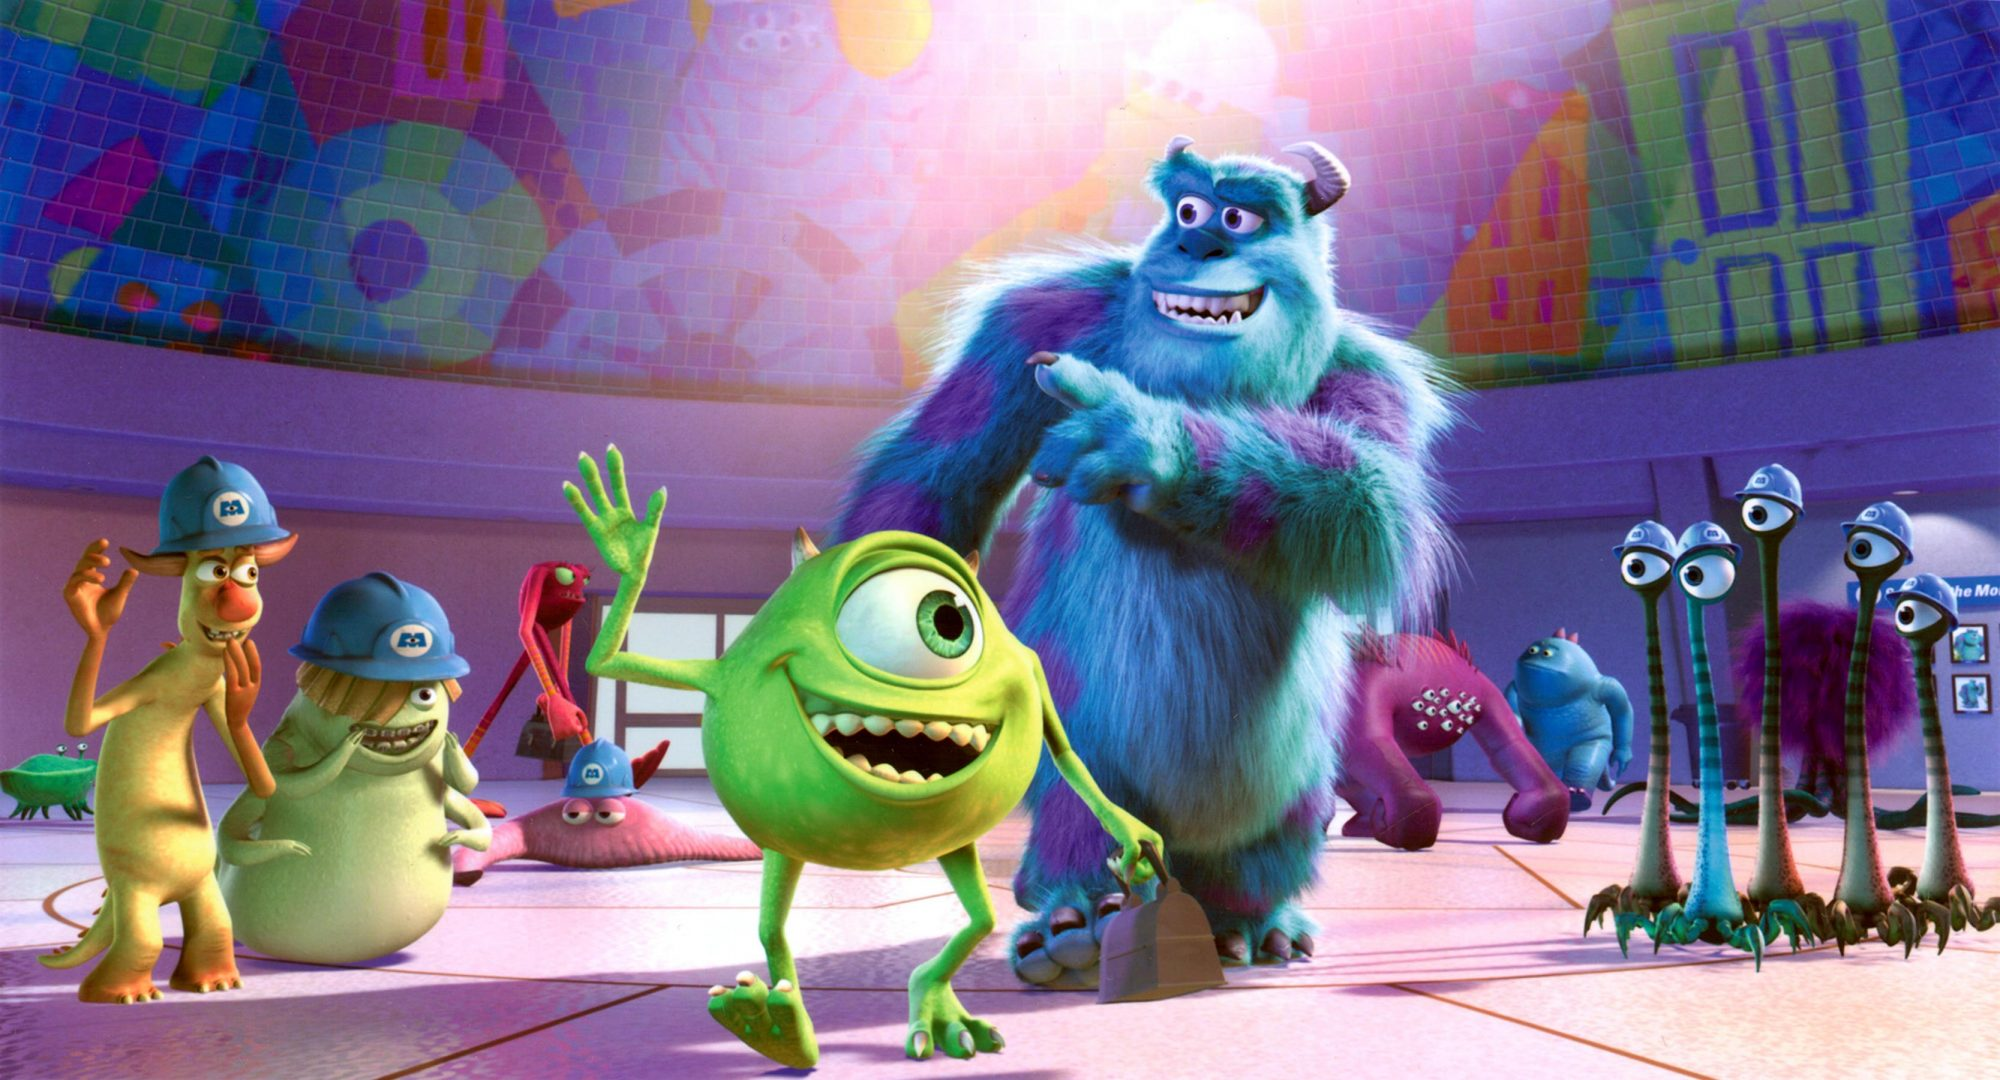 MONSTERS INC., Mike Wazowski, Sulley, 2001